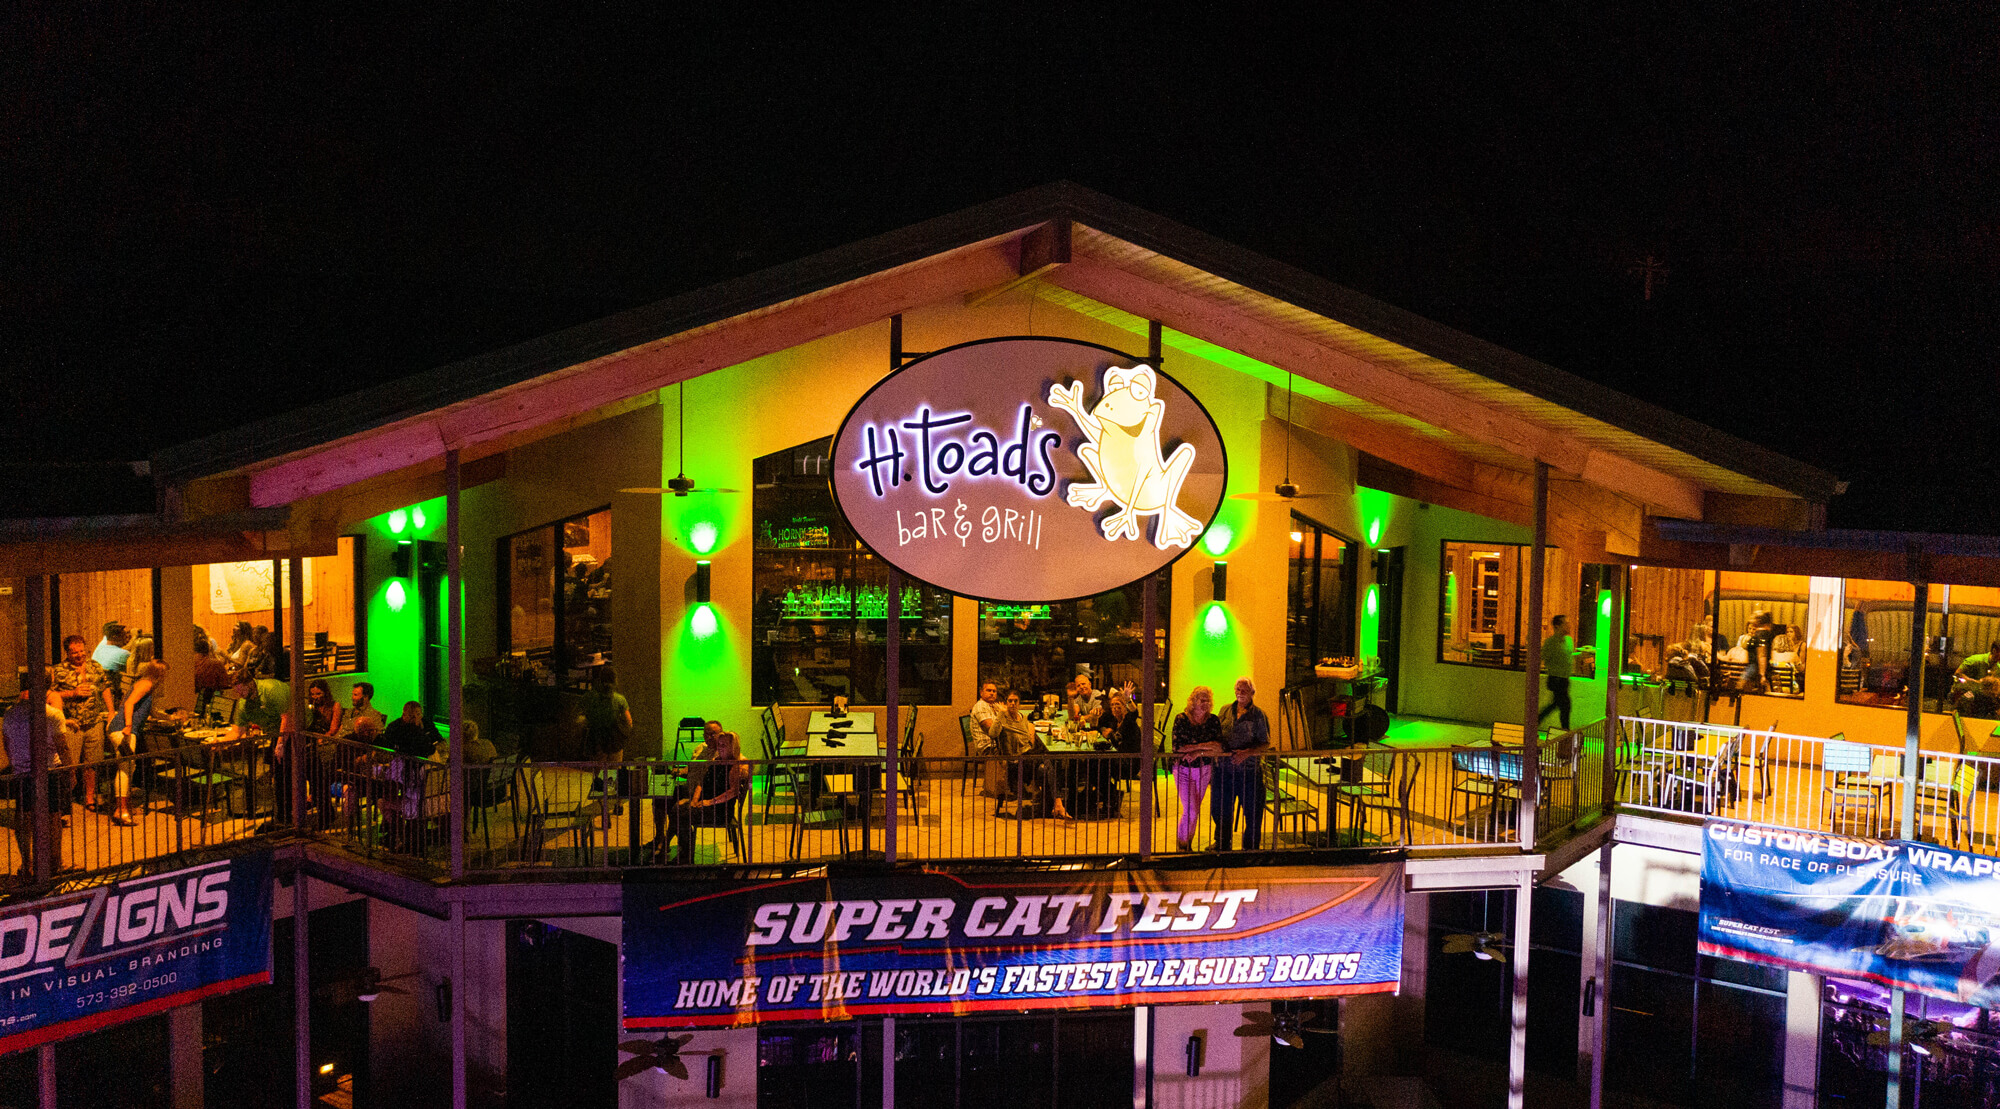 h toads bar and grill deck at night ozarks